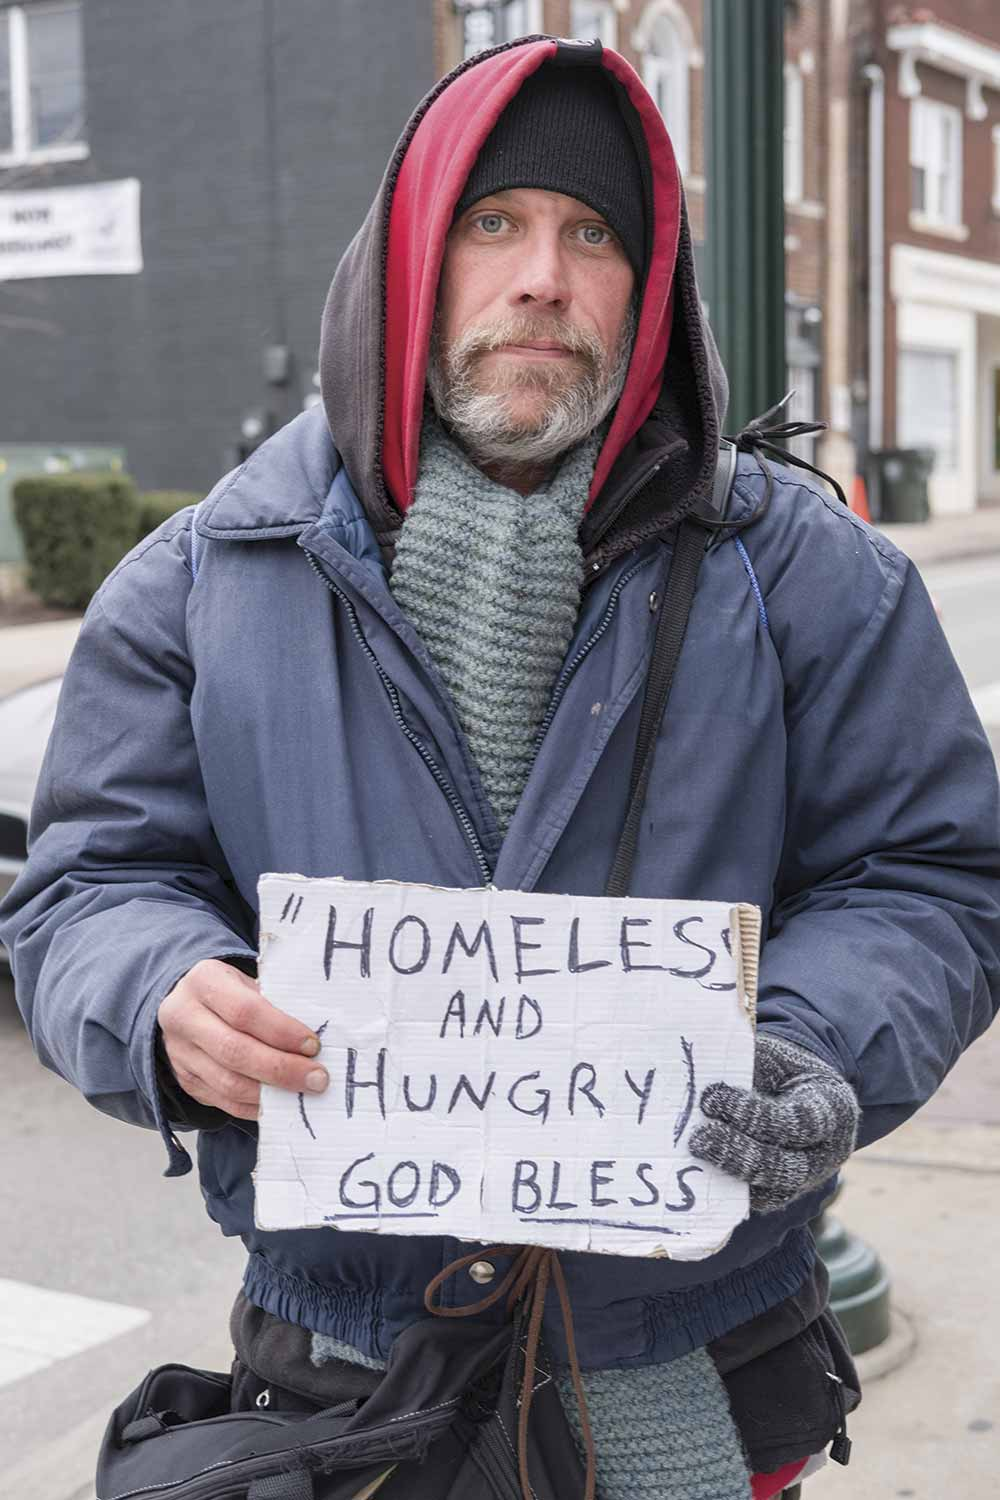 The city of Lexington attempted to control panhandling through a local ordinance, but the Kentucky Supreme Court recently struck down the measure, saying it violates free speech. Finding a balance between keeping beggars away from businesses and being compassionate to those in need is a struggle, officers say. (Photo by Jim Robertson)